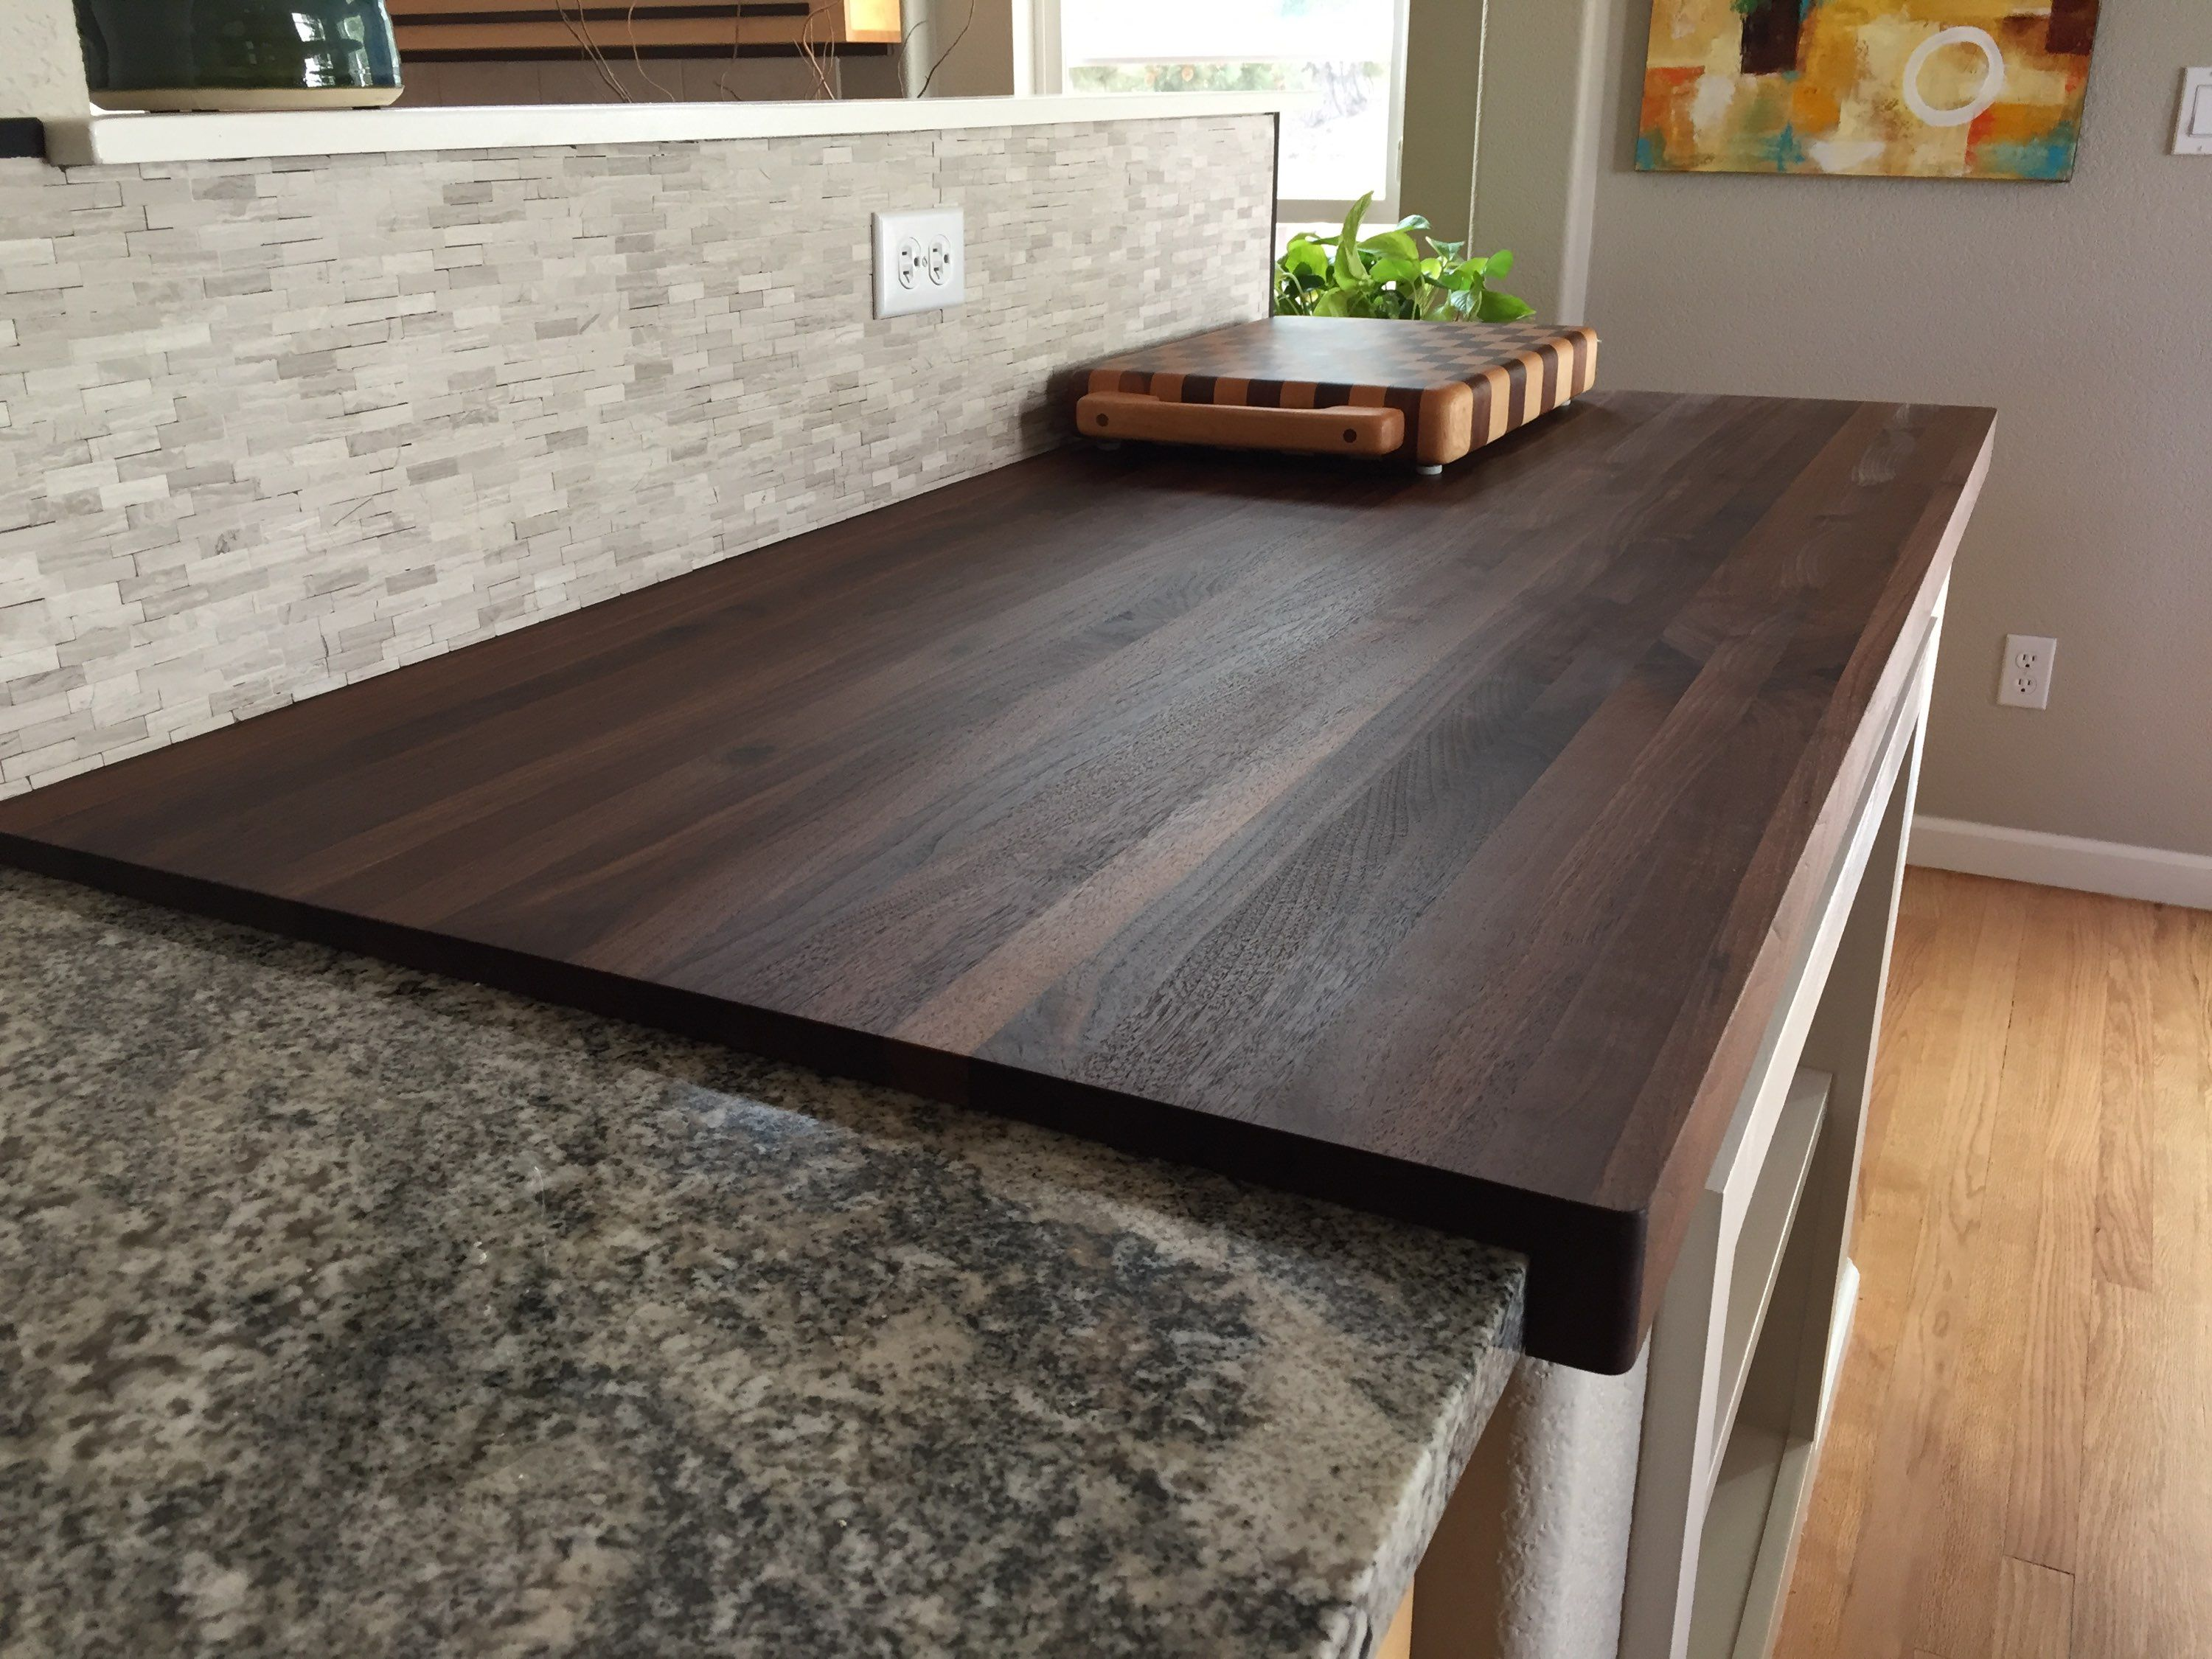 Walnut Butcher Block Countertop Customize Order Online With